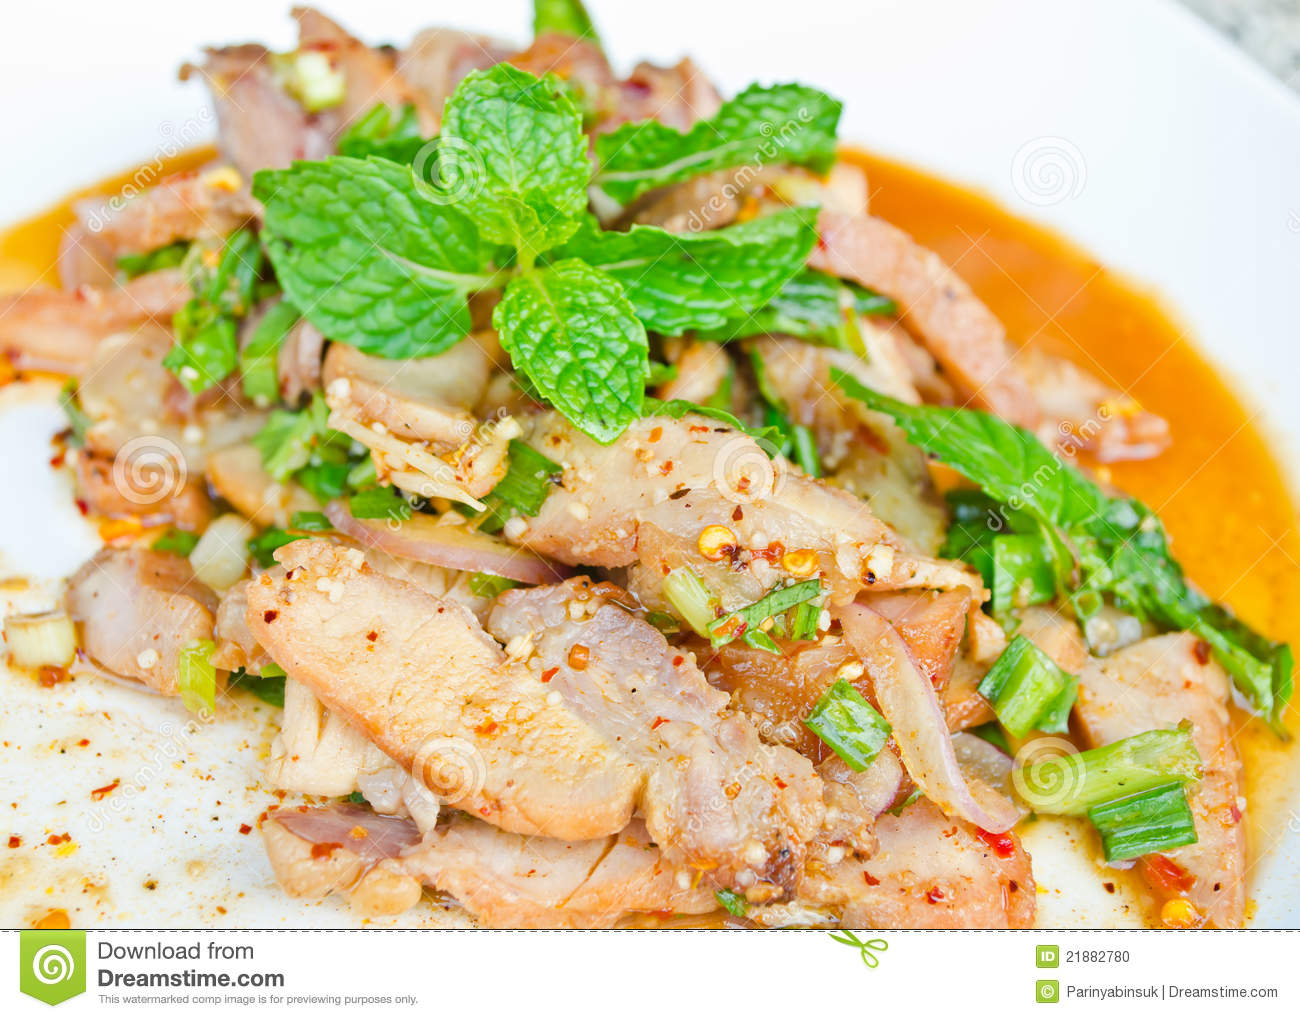 Thai Spicy Grilled Pork Salad Stock Photo - Image: 21882780